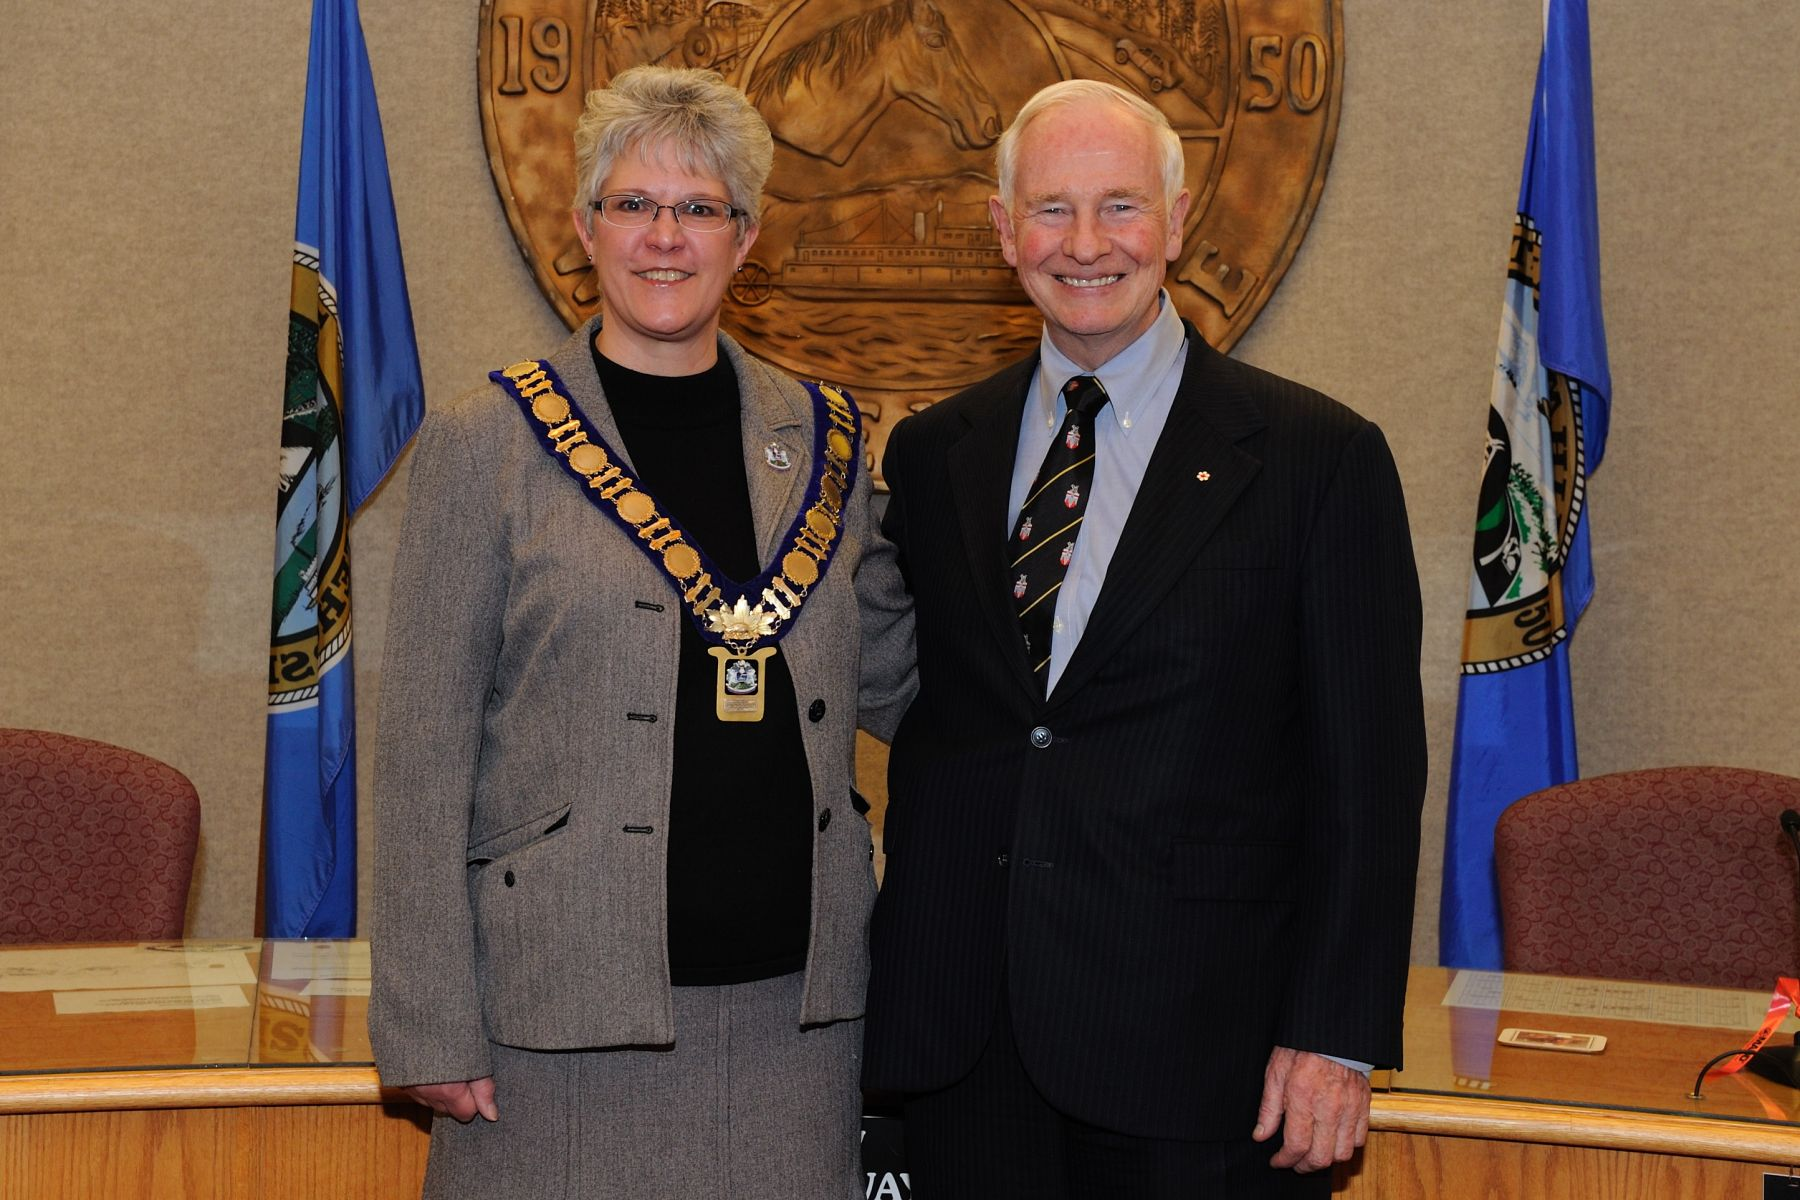 Official photo of His Excellency with Mayor of Whitehorse.